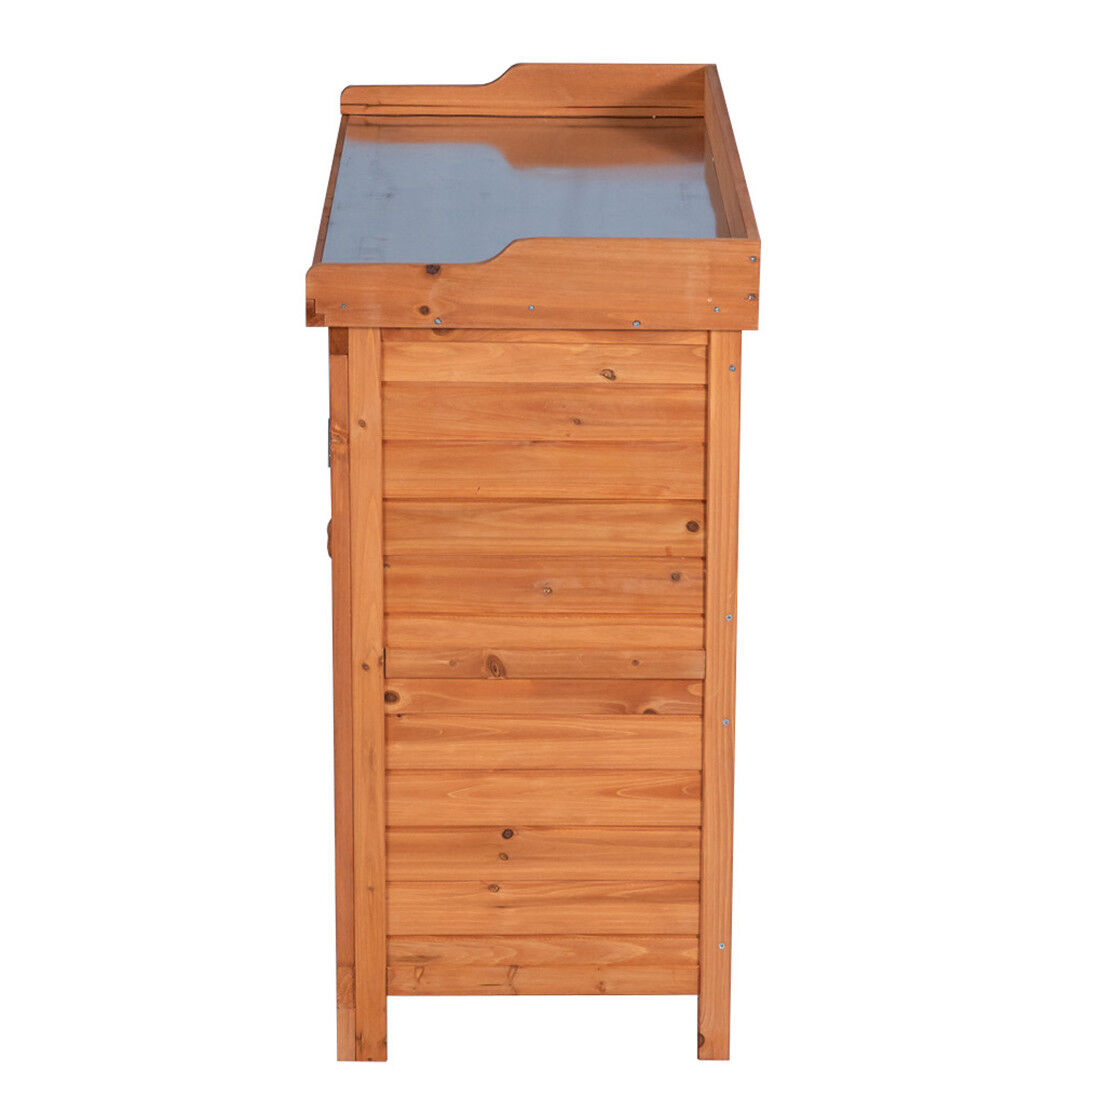 Outdoor Garden Wood Storage Furniture Box Waterproof Tool Shed W Potting Bench